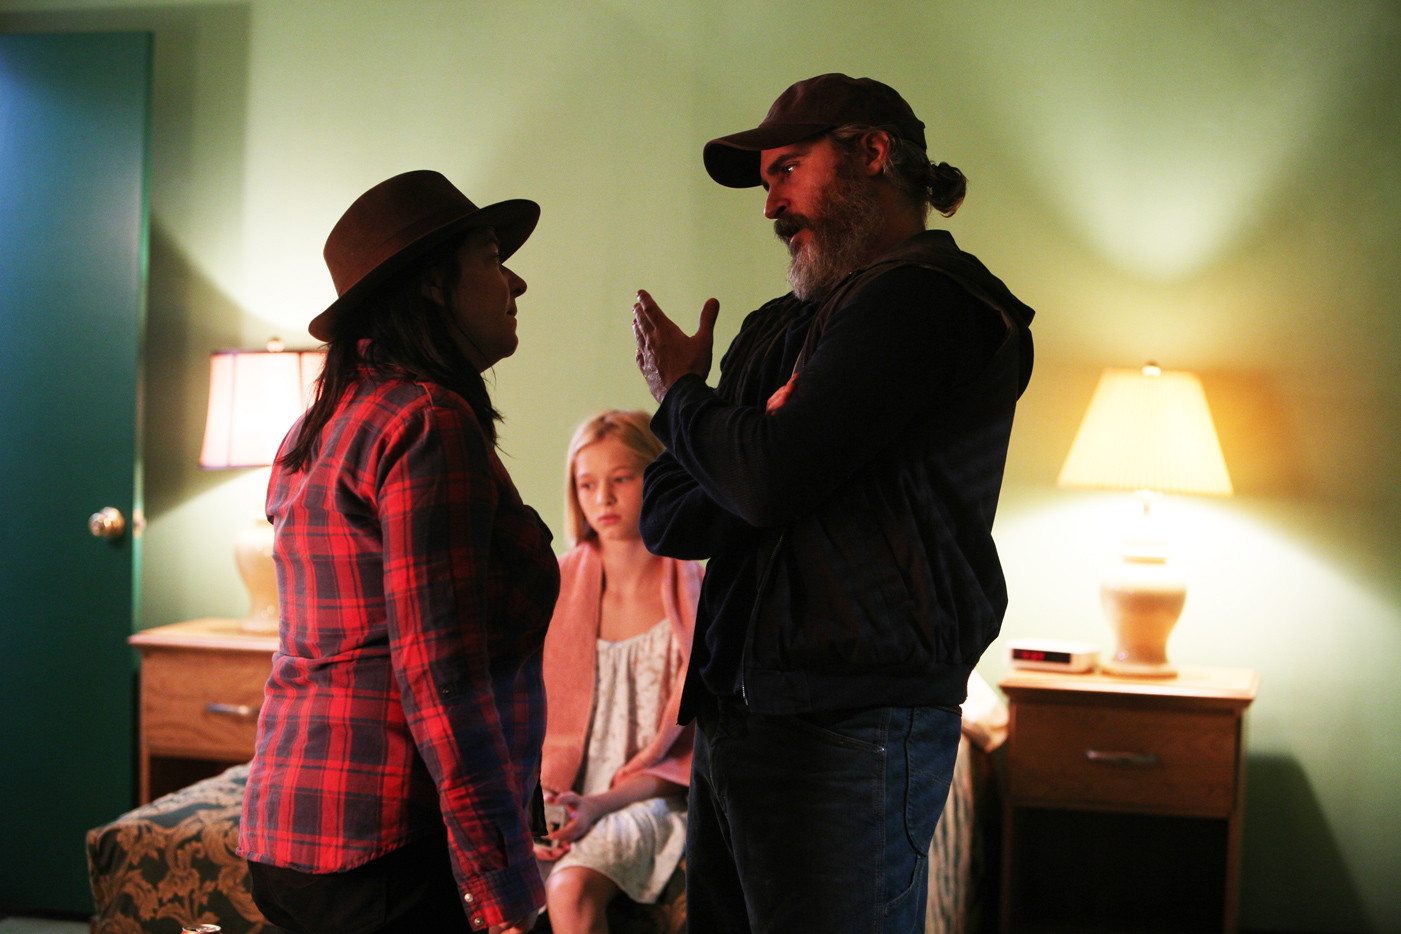 Lynne Ramsay, You Were Never Really Here - Ramsay doesn't pull any punches with this film. She has a unique way of matching visual elements with the inner turmoil of a character. She's one of the most important female filmmakers working today and she should be on people's radar.